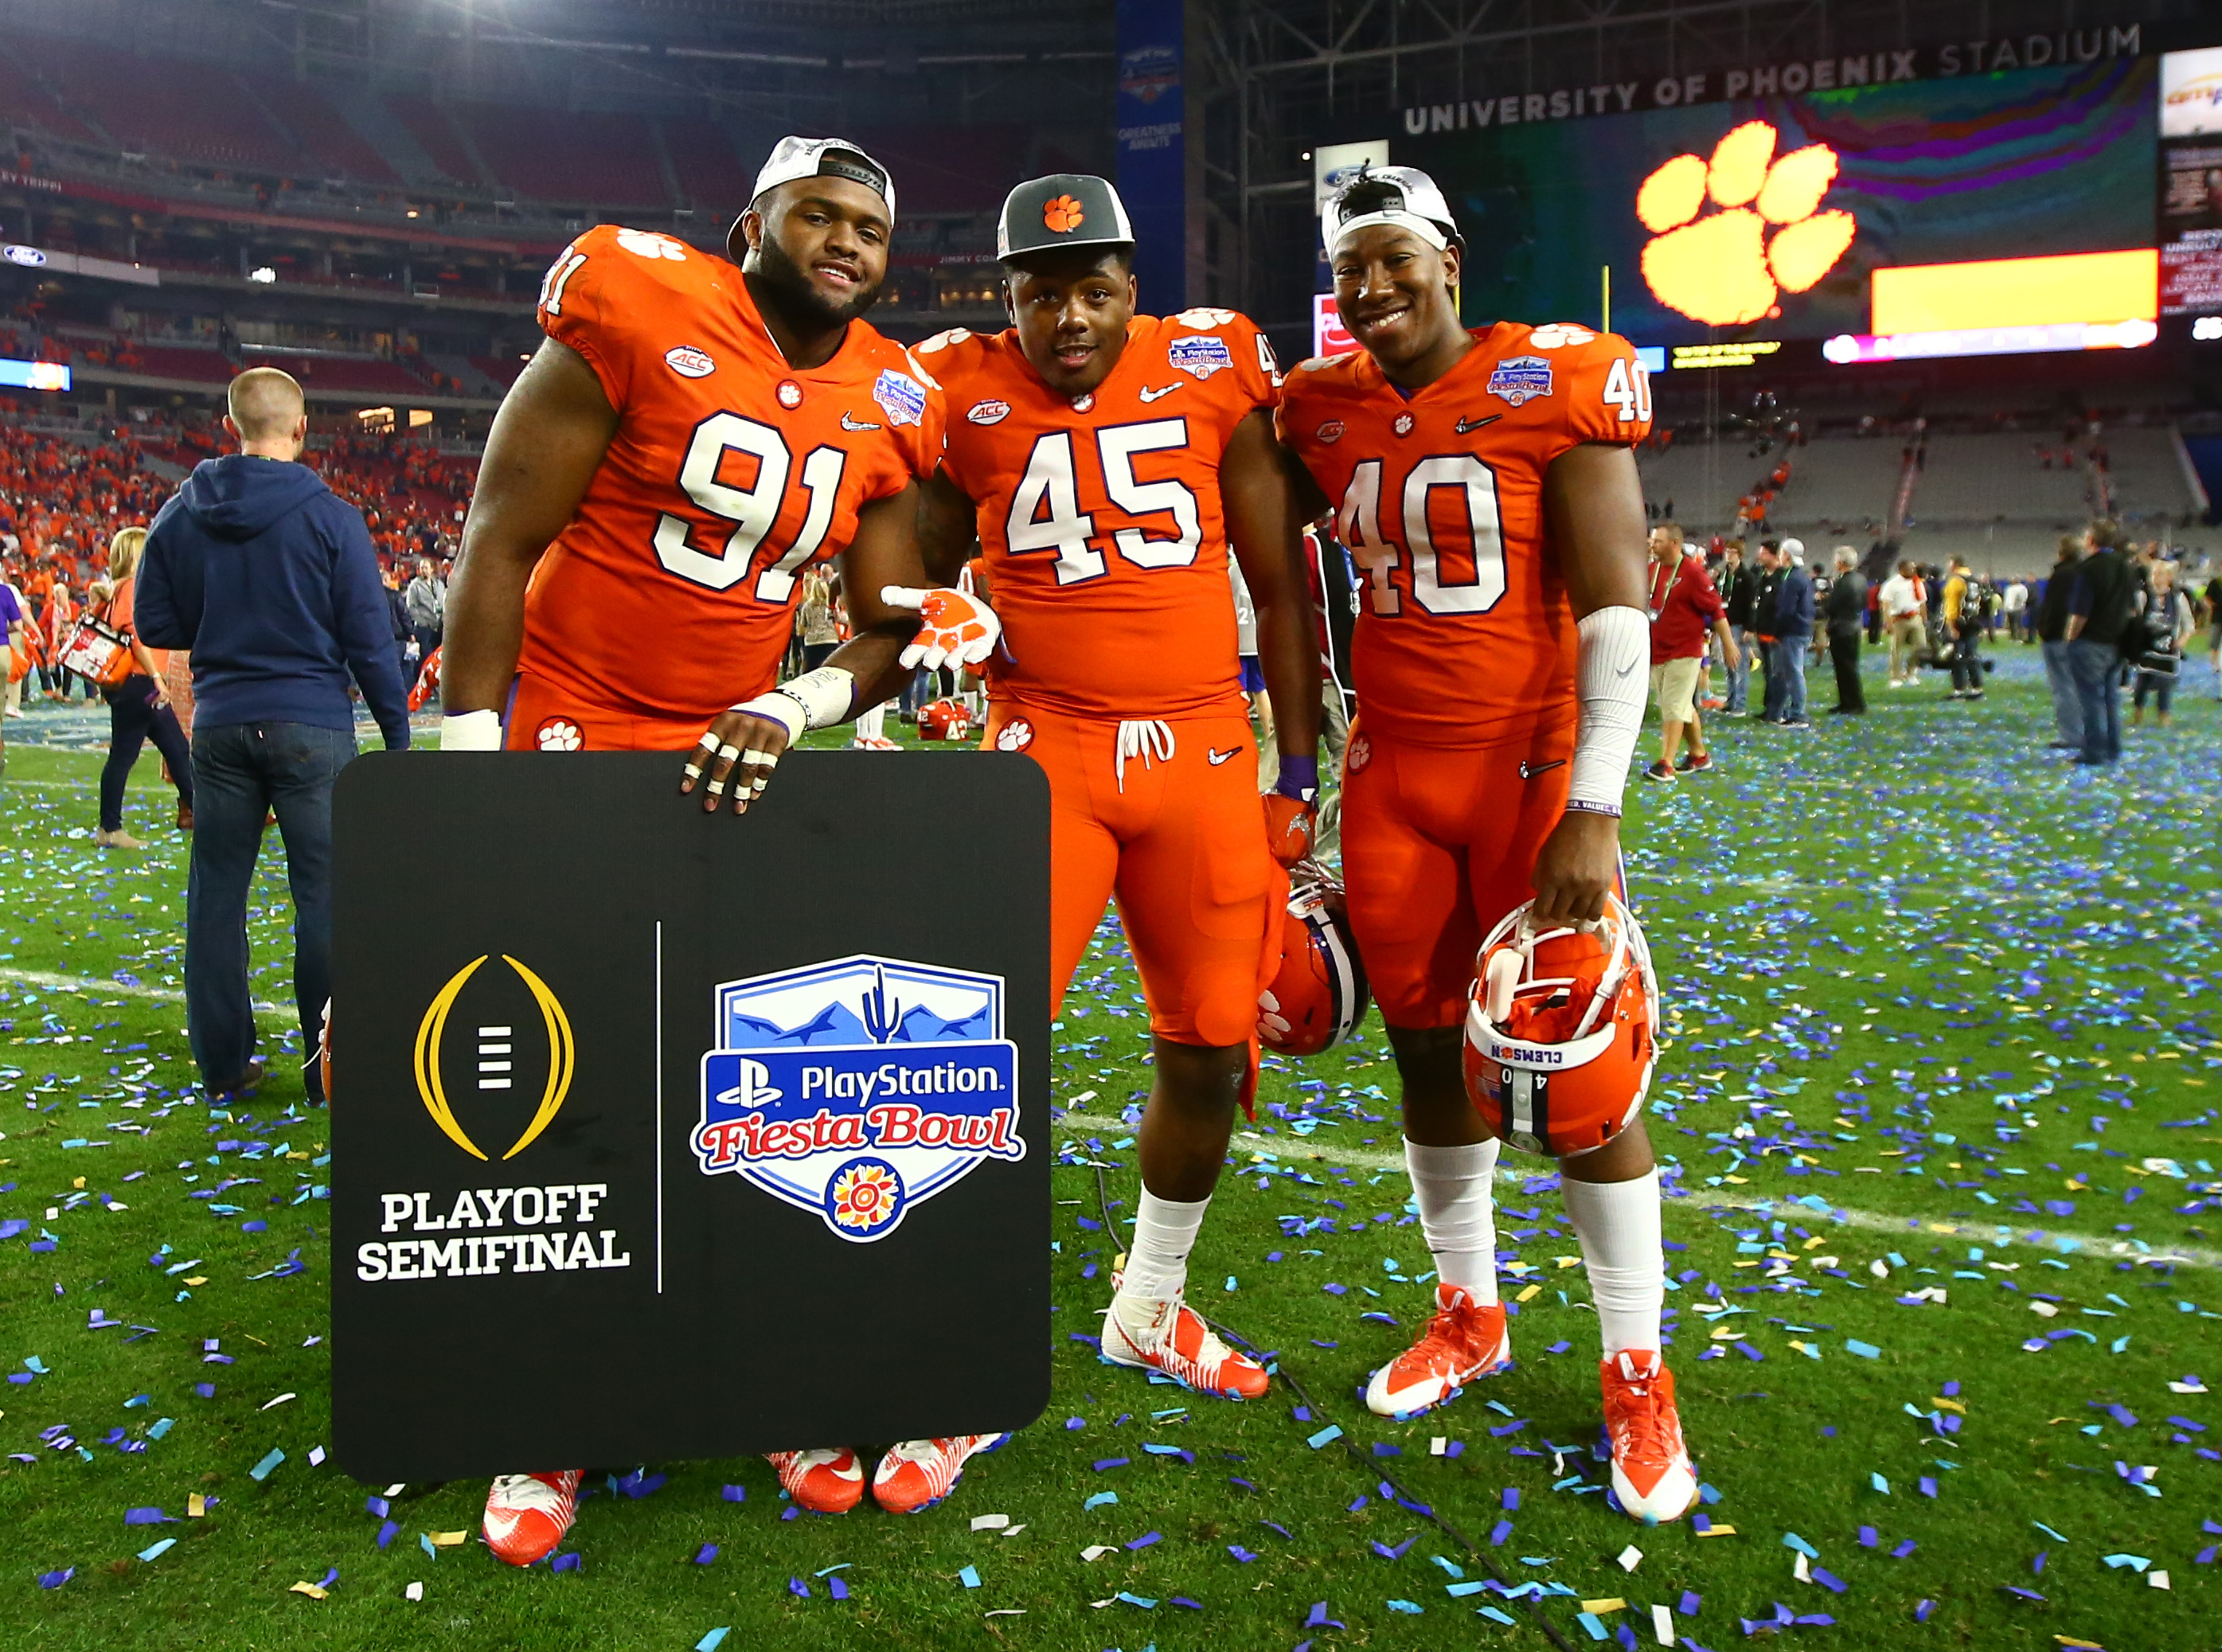 Clemson Vs Wisconsin >> Clemson Football: 5 reasons why the Tigers won't repeat in 2017 | FOX Sports